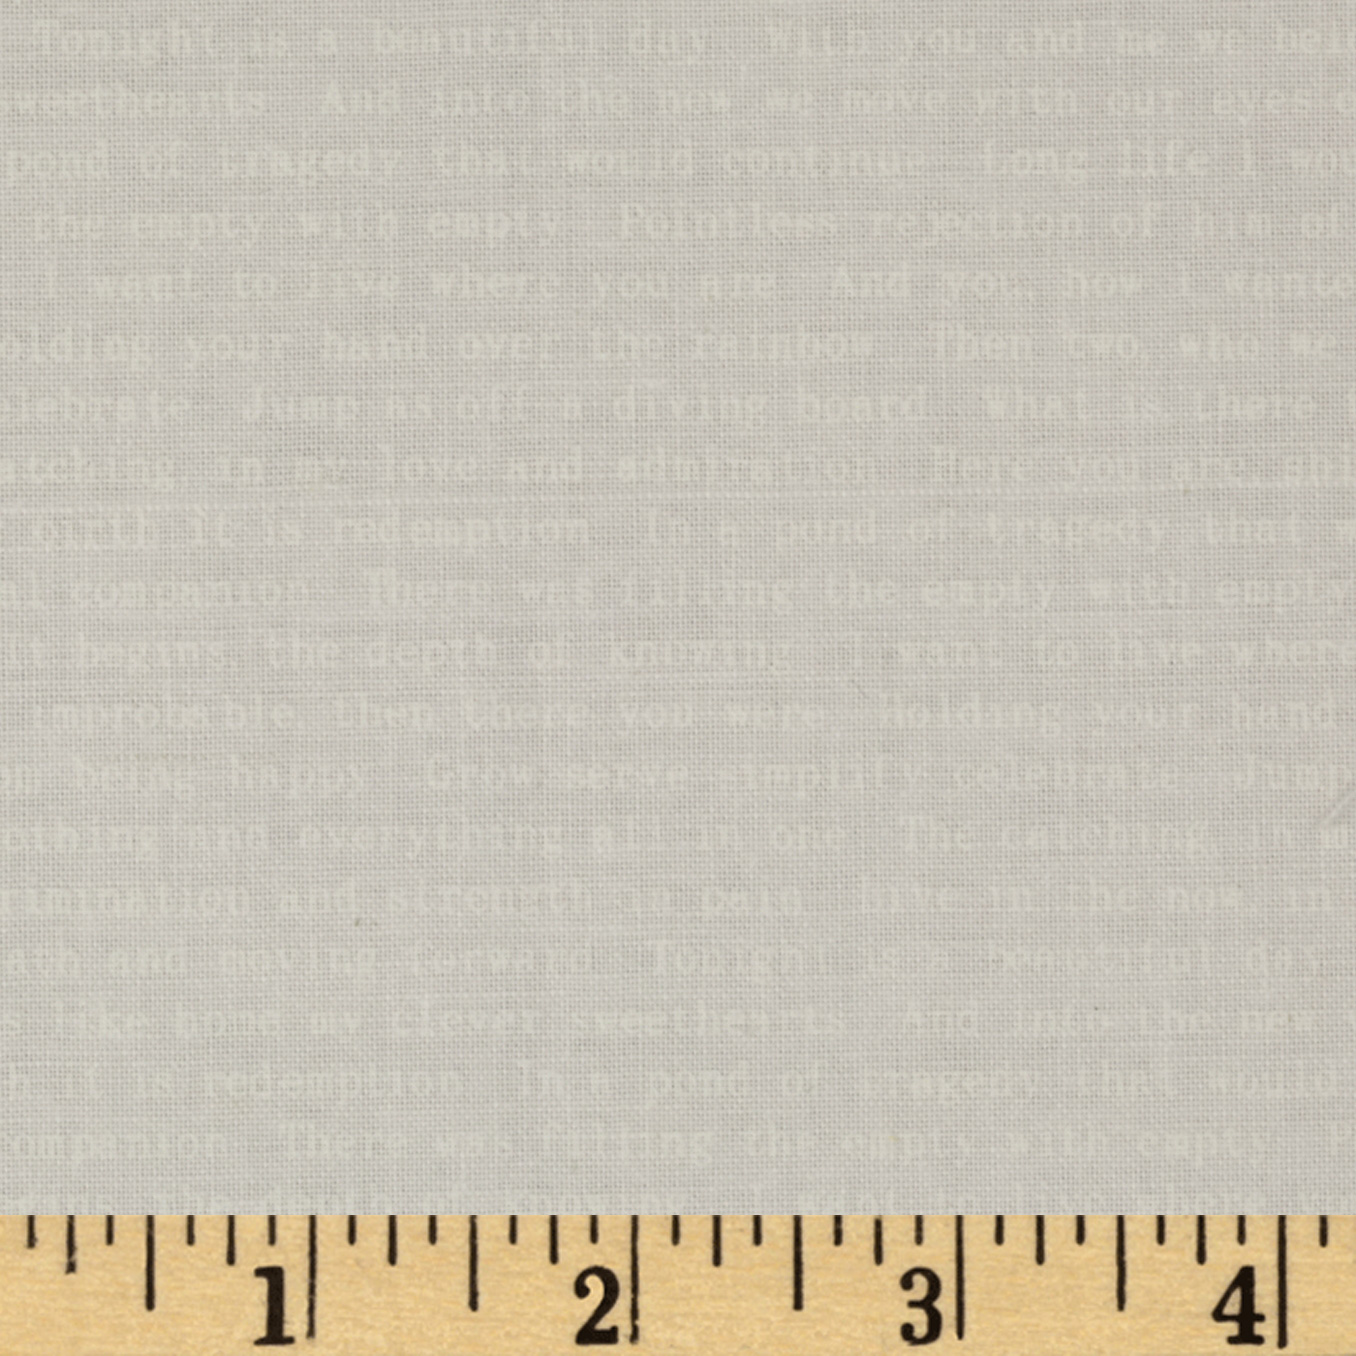 Sunprint Text White/ White Fabric